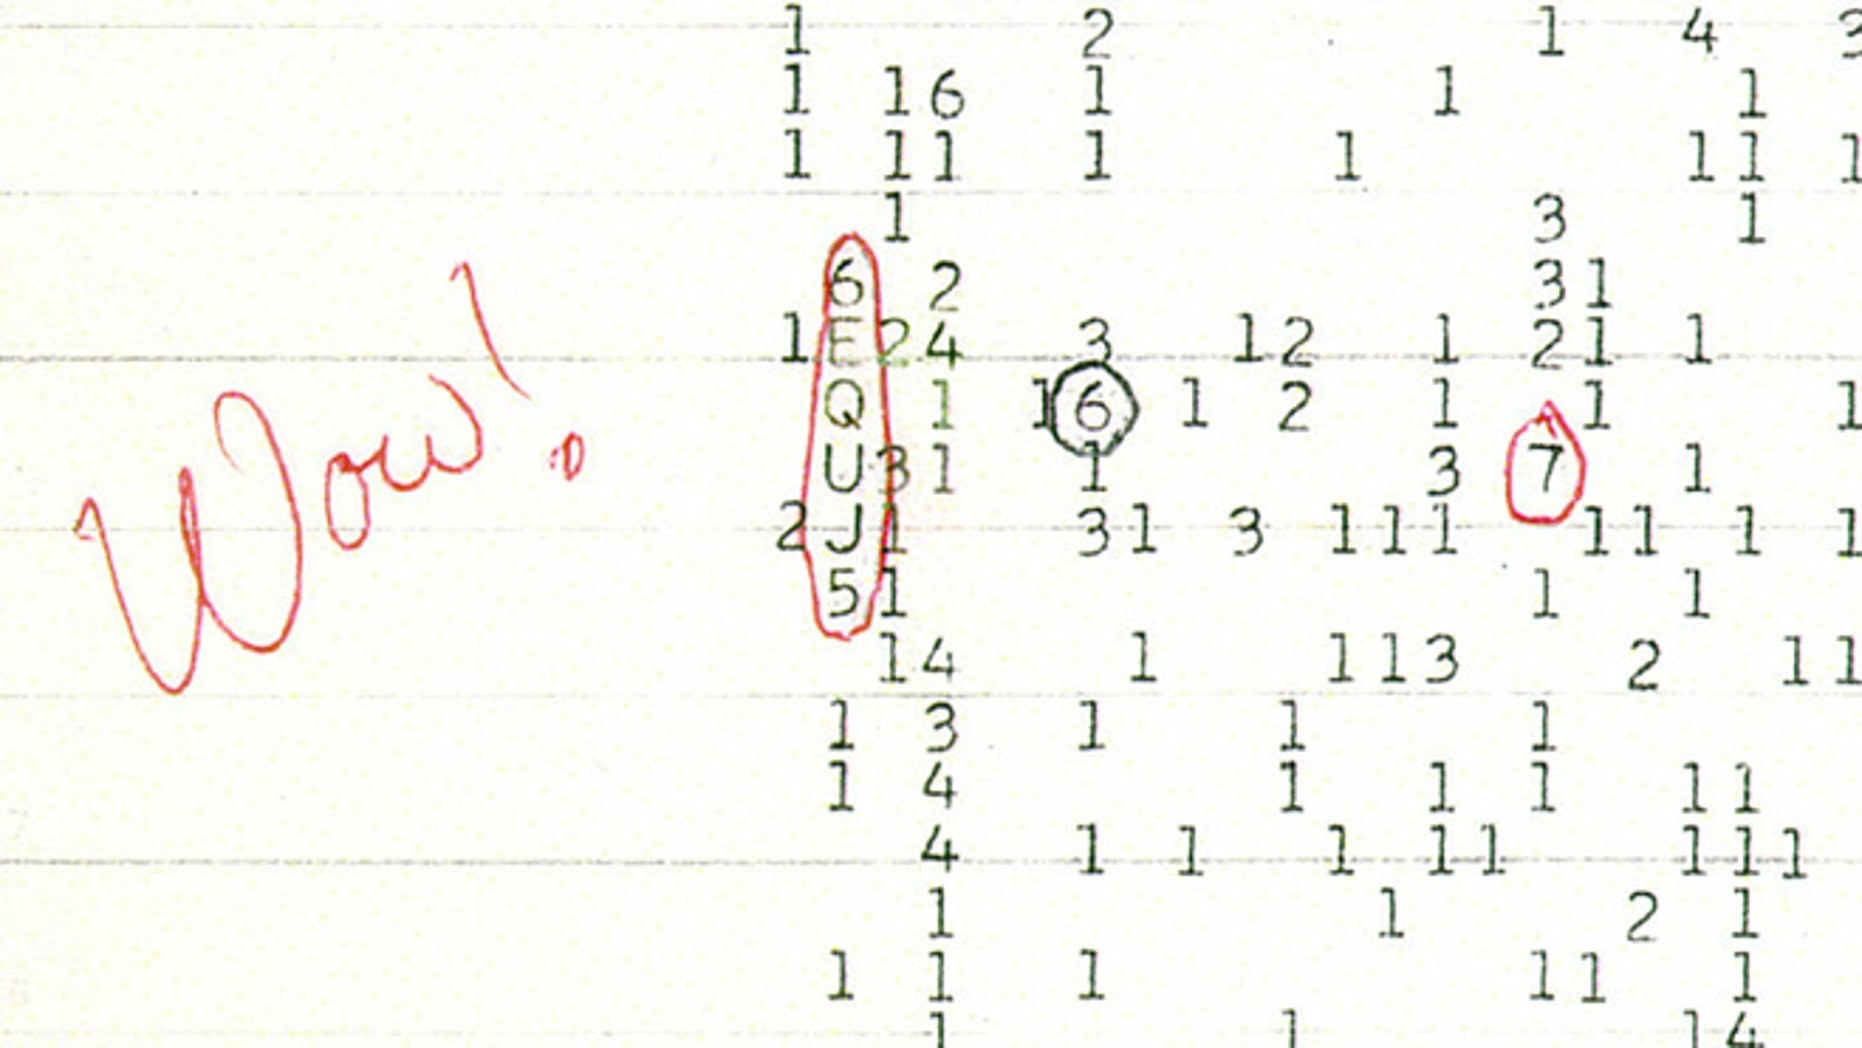 A scan of a color copy of the original computer printout bearing the Wow! signal, taken several years after the signal's 1977 arrival.